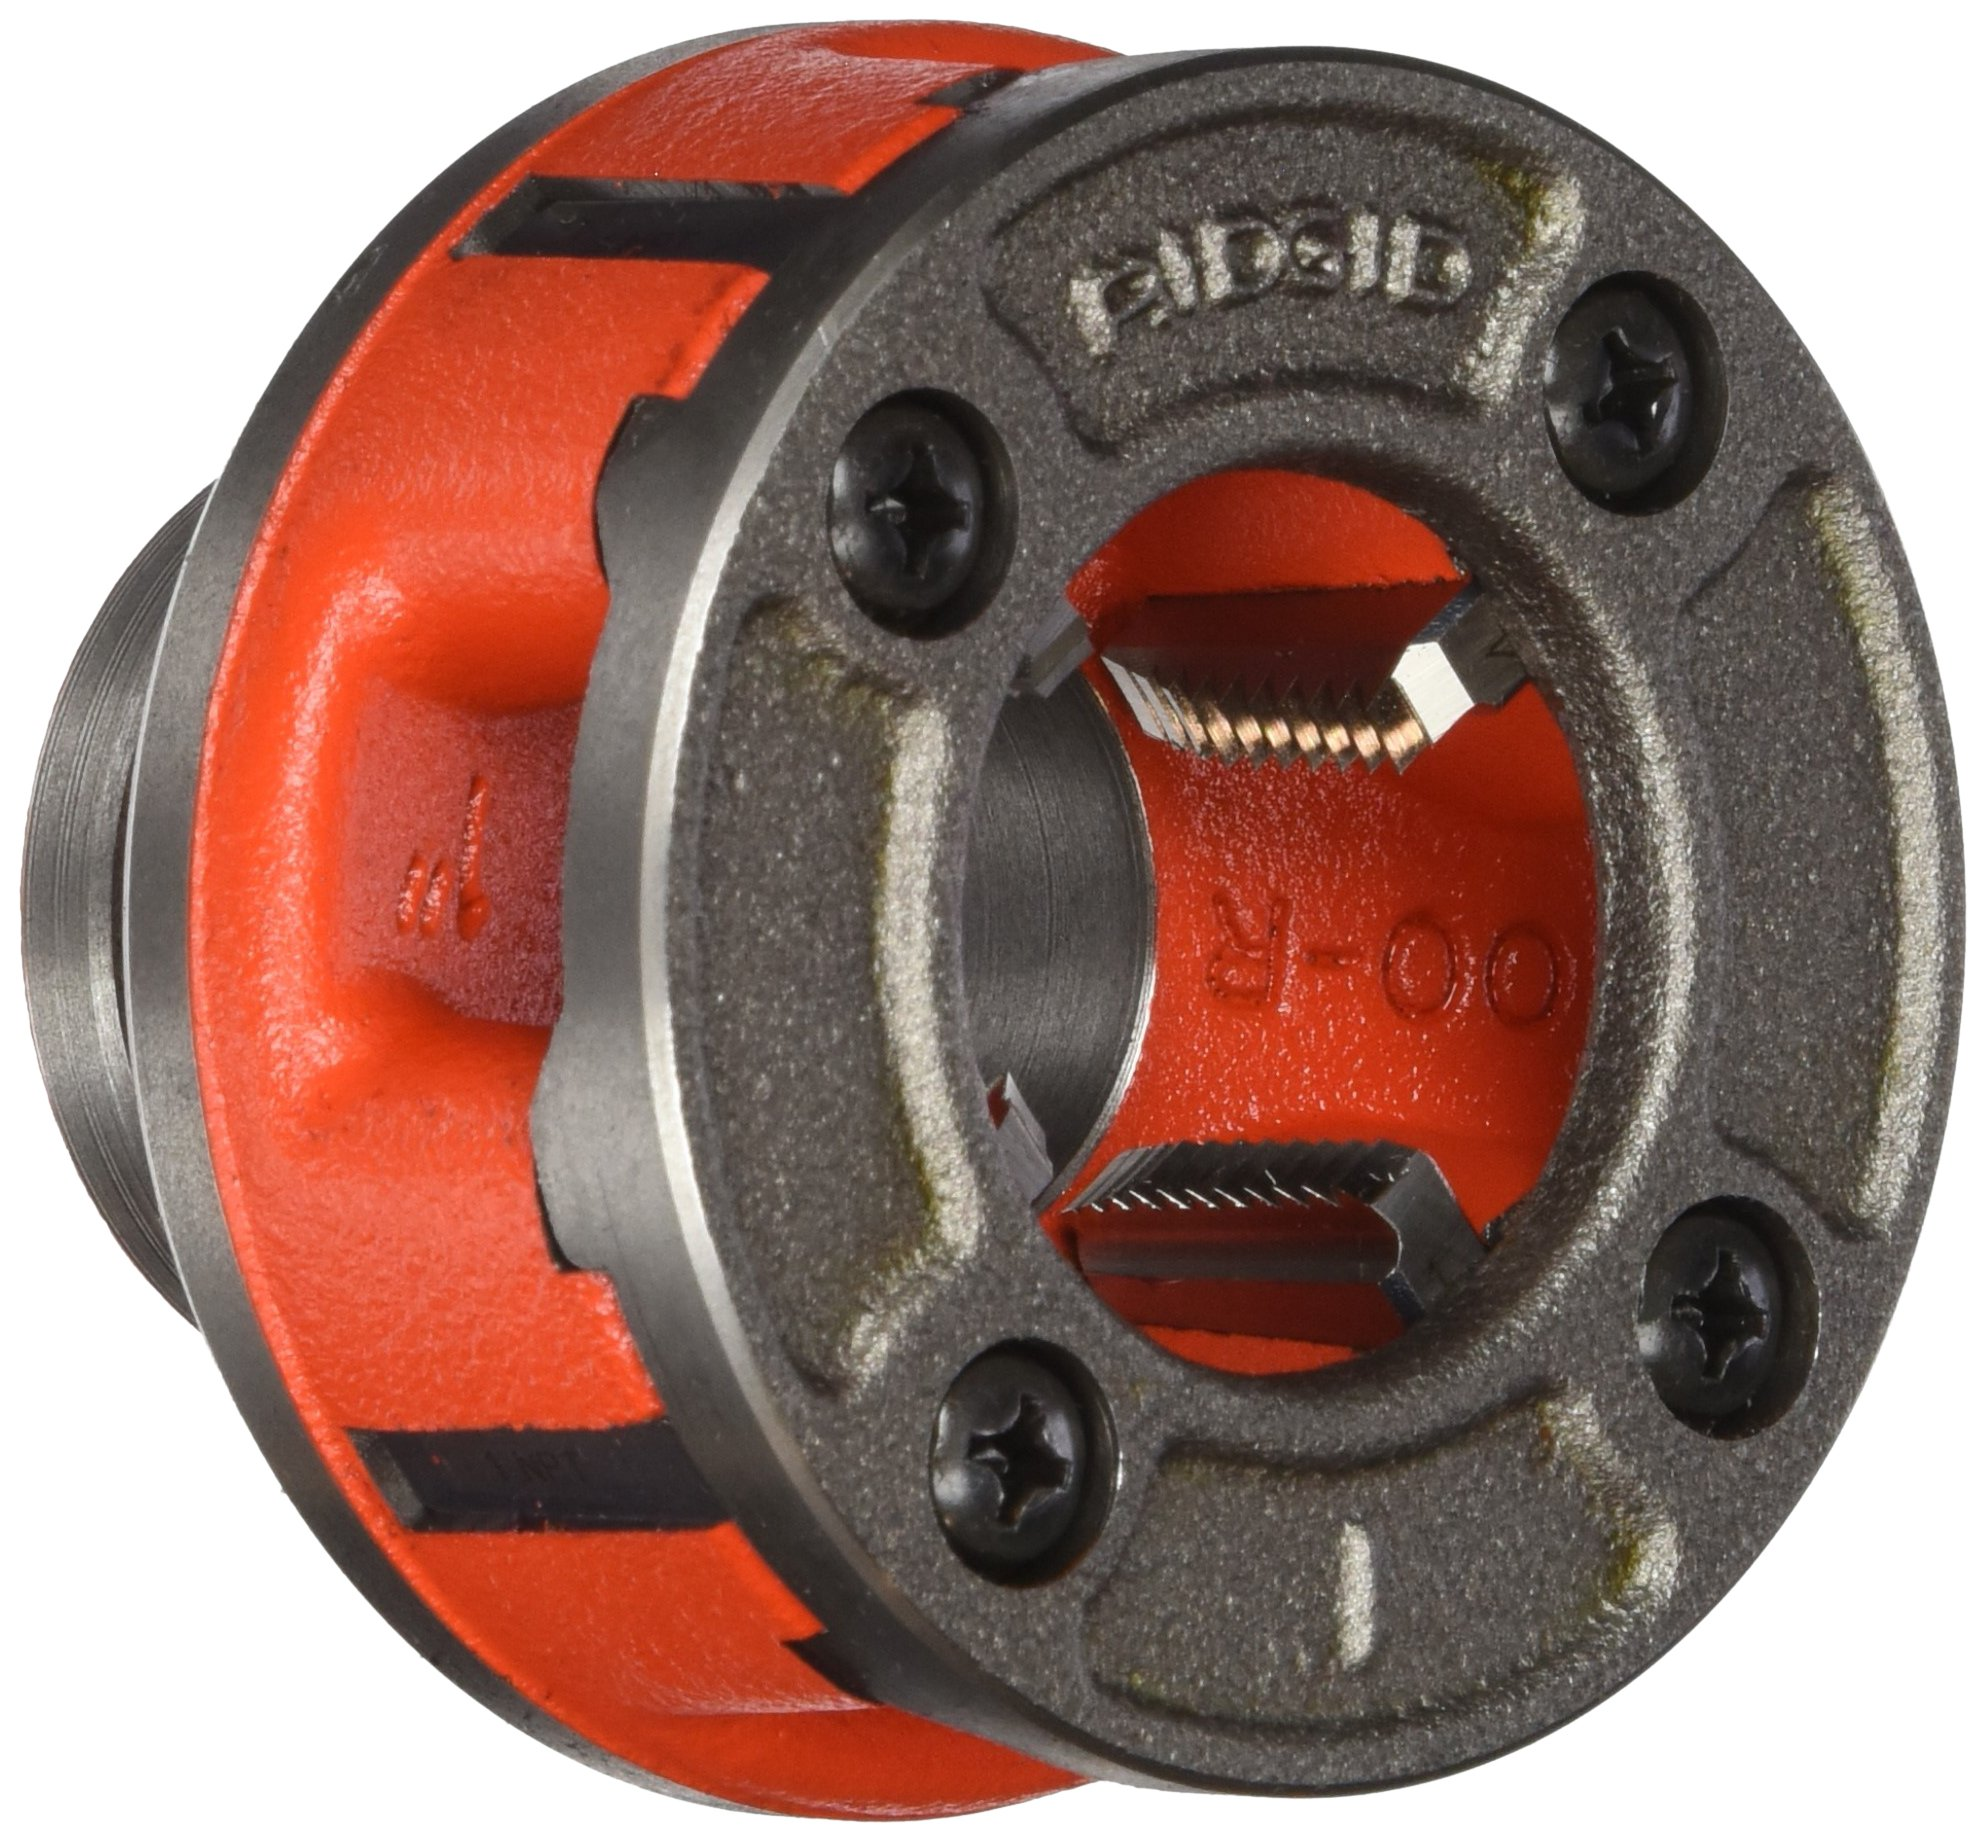 RIDGID 36895 Model OO-R Die Head, 12R Alloy Die Head comes with 3/4-inch High-Speed, Factory Set Dies that Deliver Clean, Precise 14 TPI